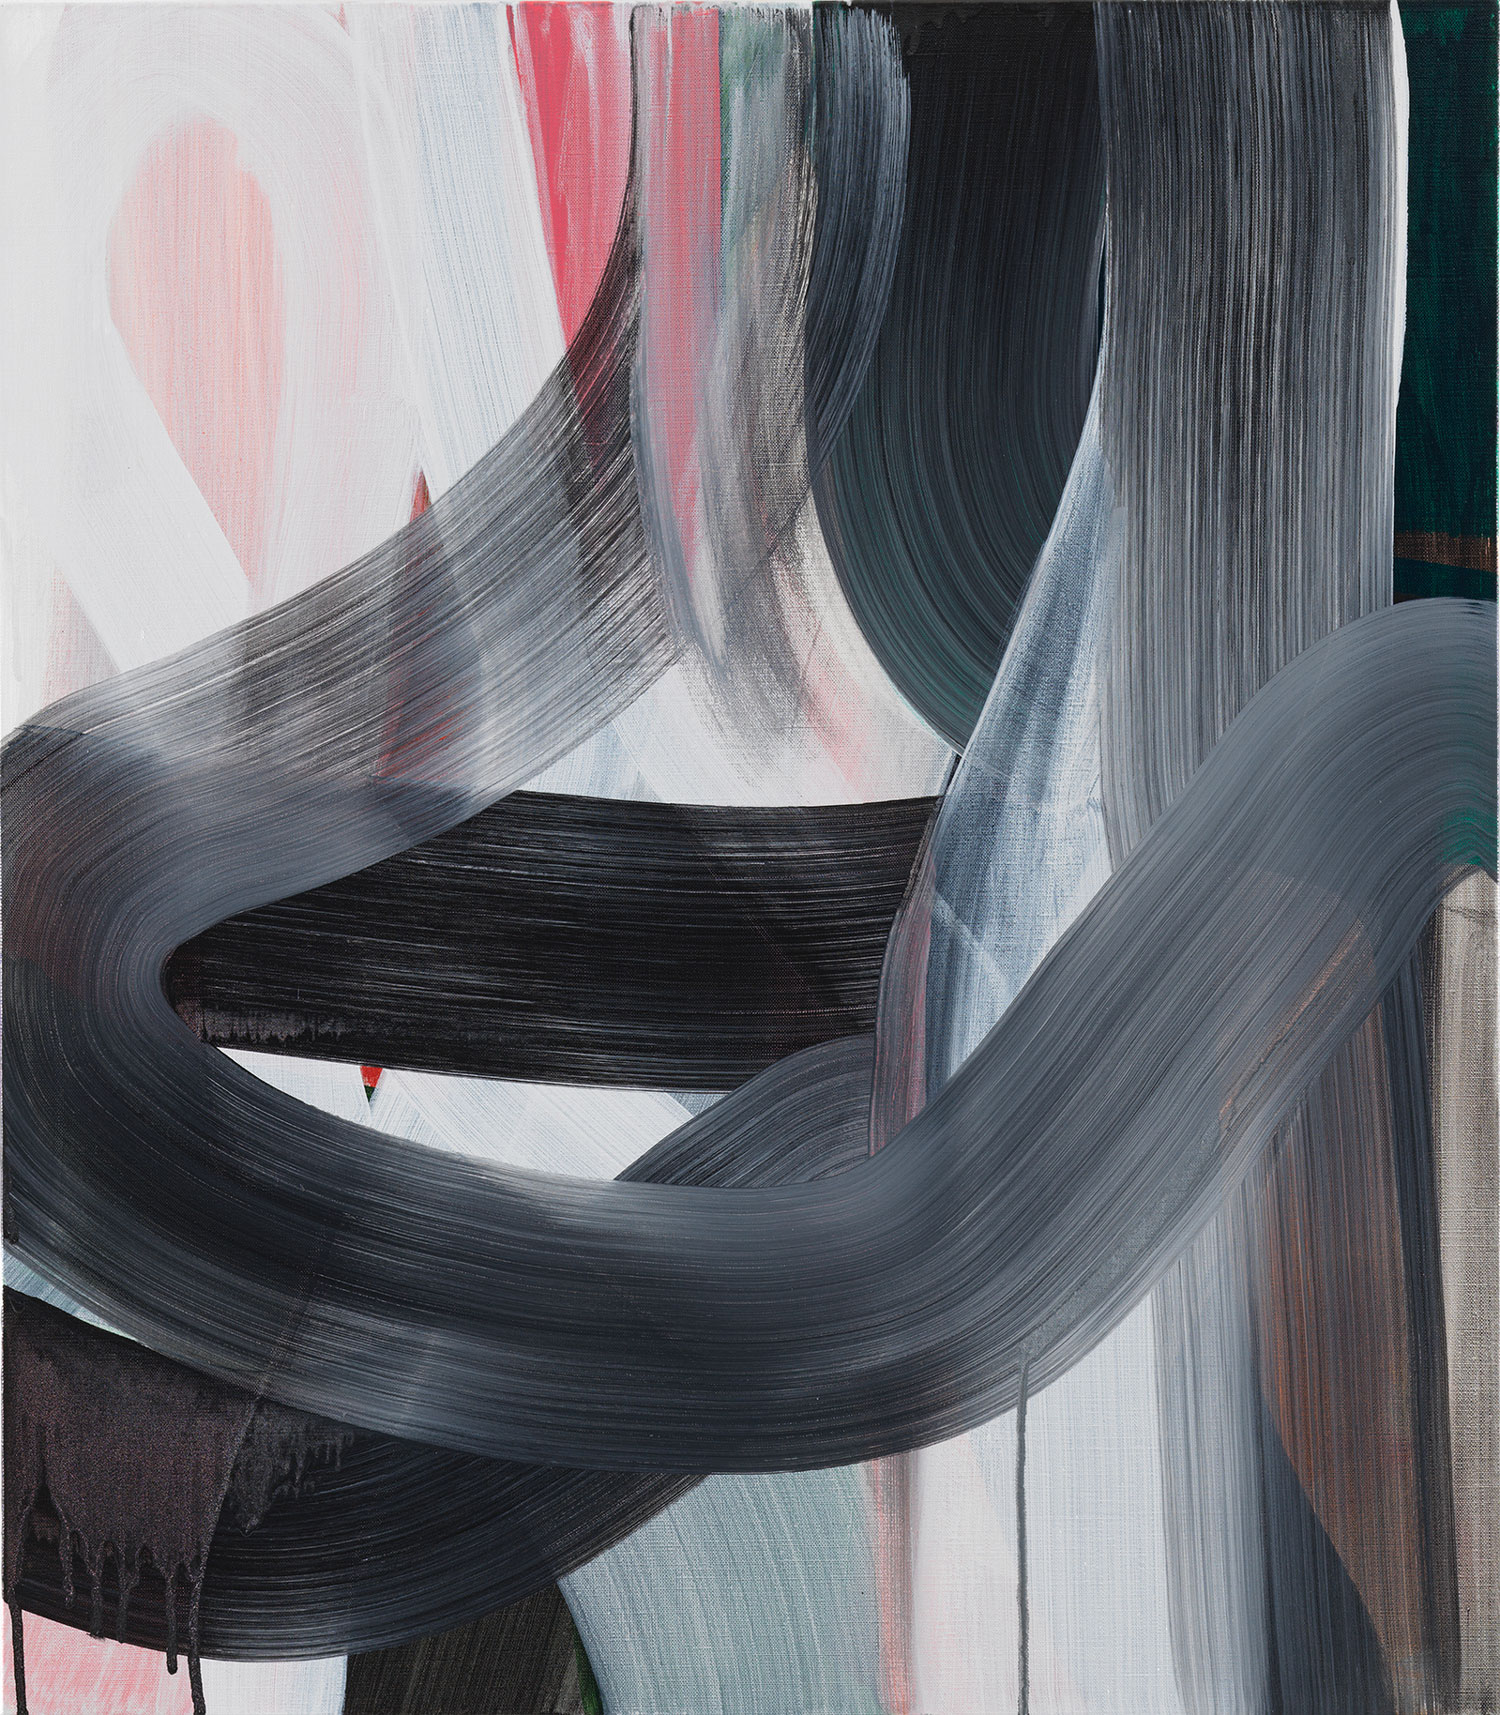 Liliane Tomasko sharper turn